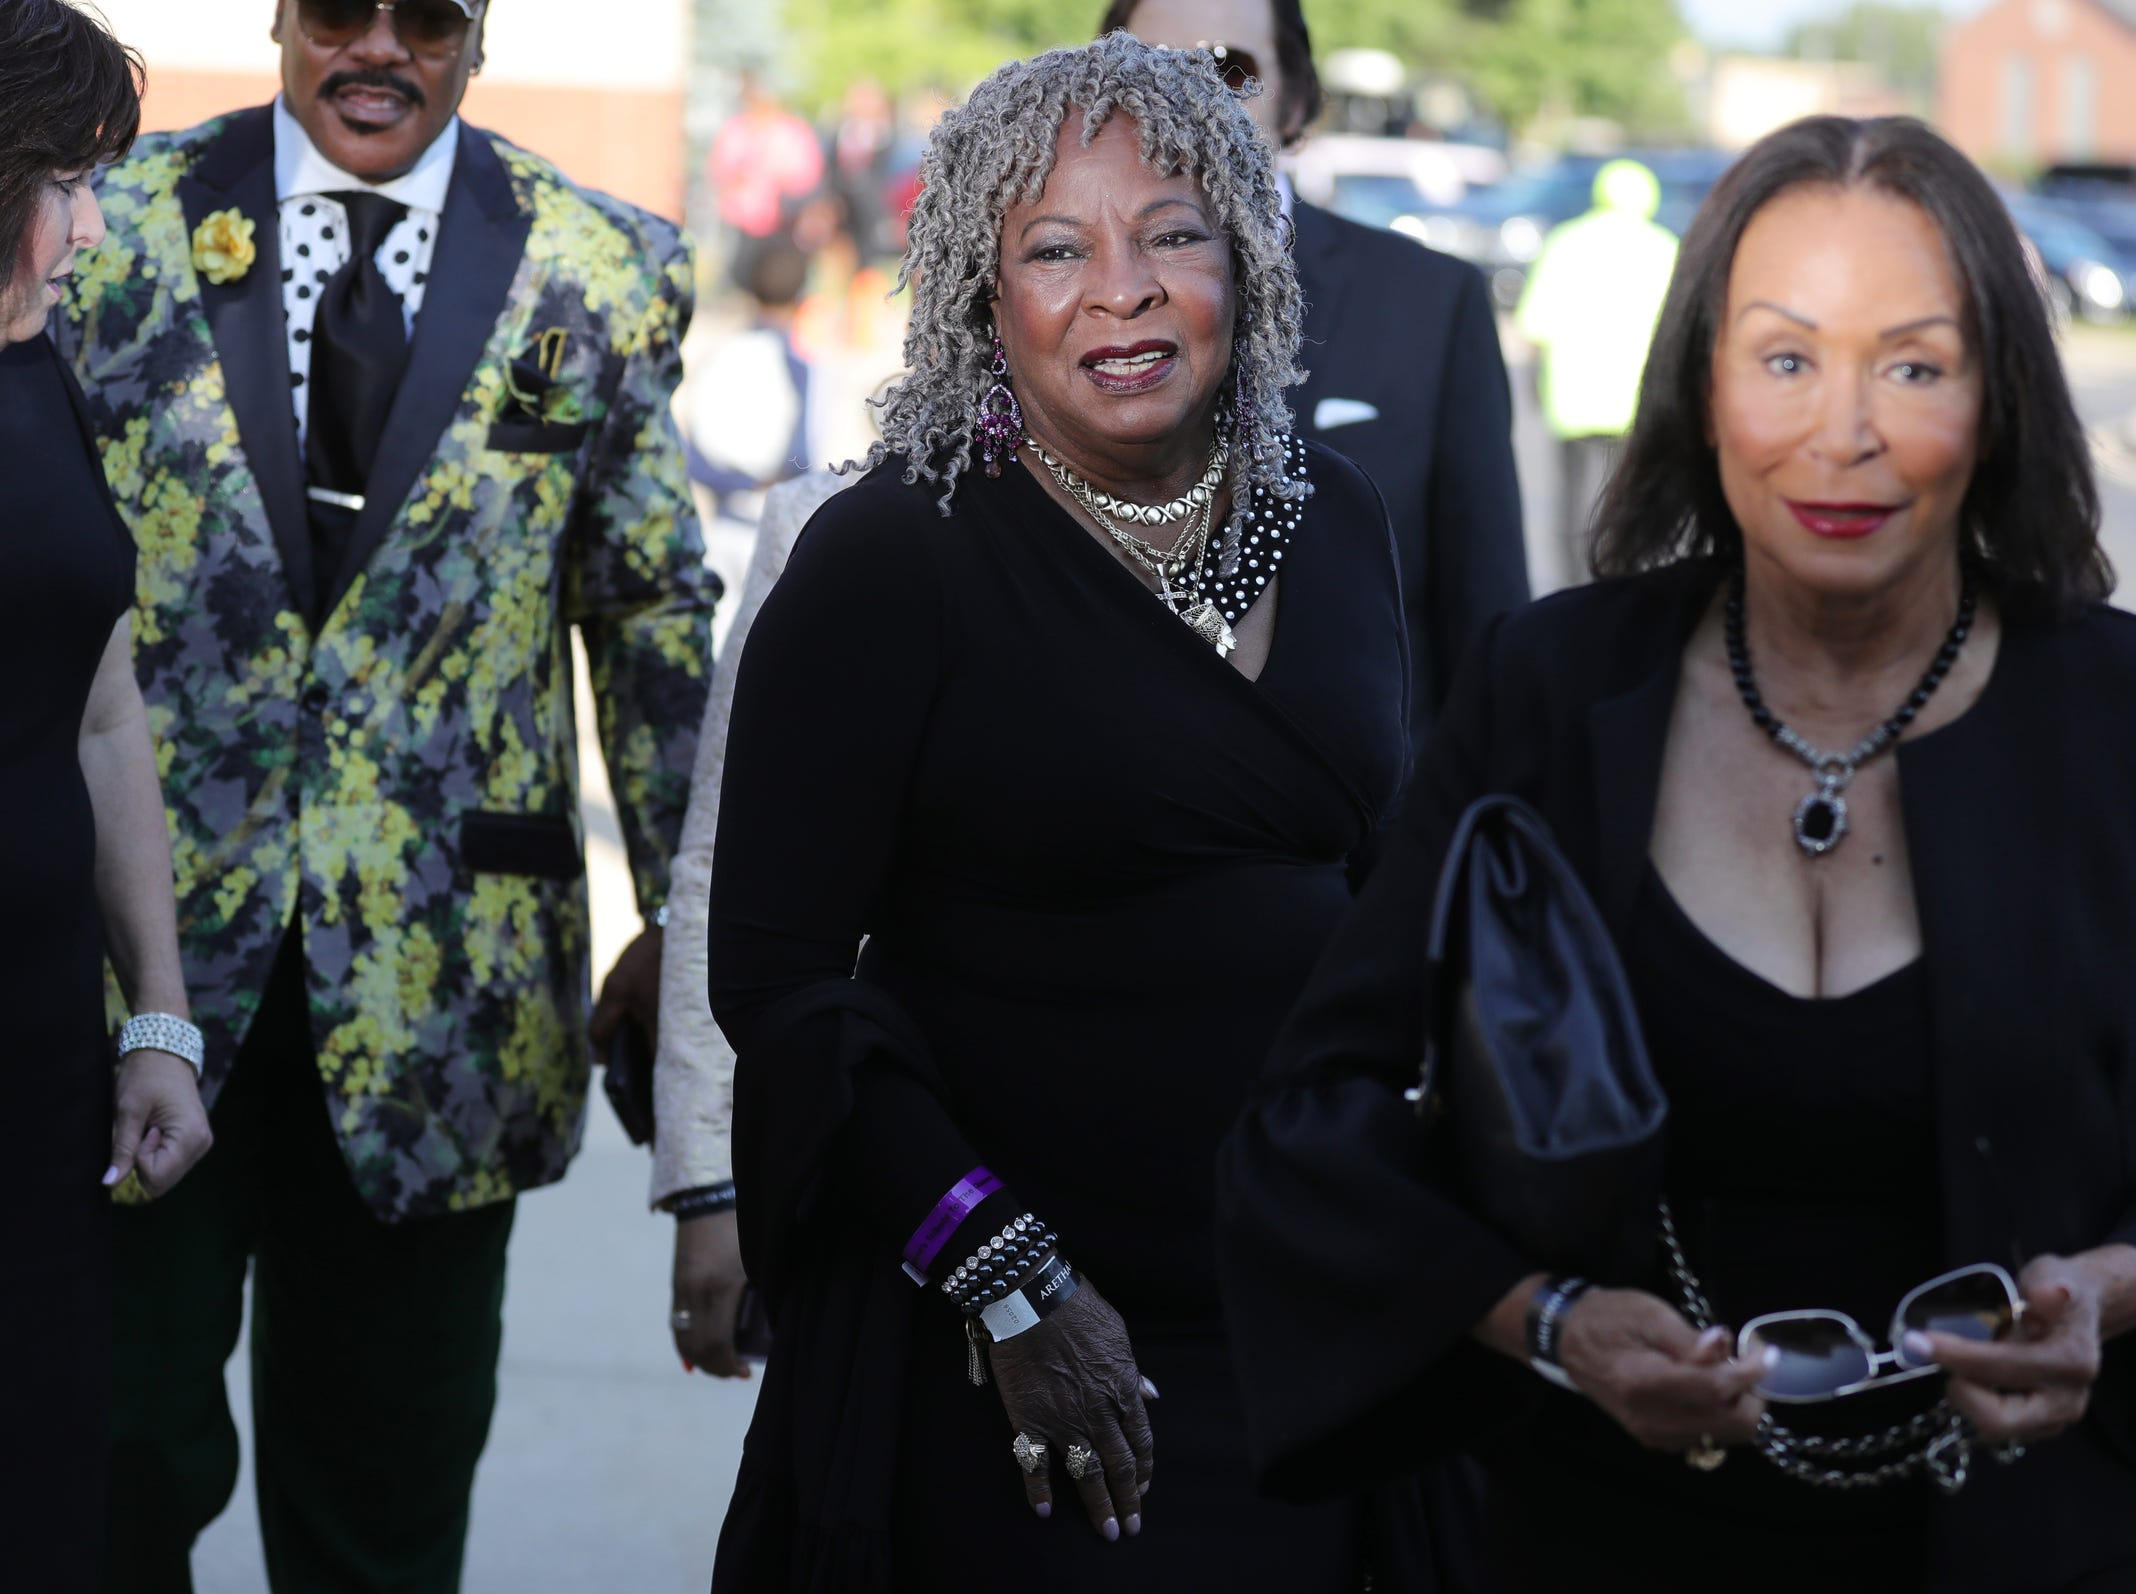 Martha Reeves smiles as she arrives for Aretha Franklin's funeral at Greater Grace Temple in Detroit on Friday, August 31, 2018.